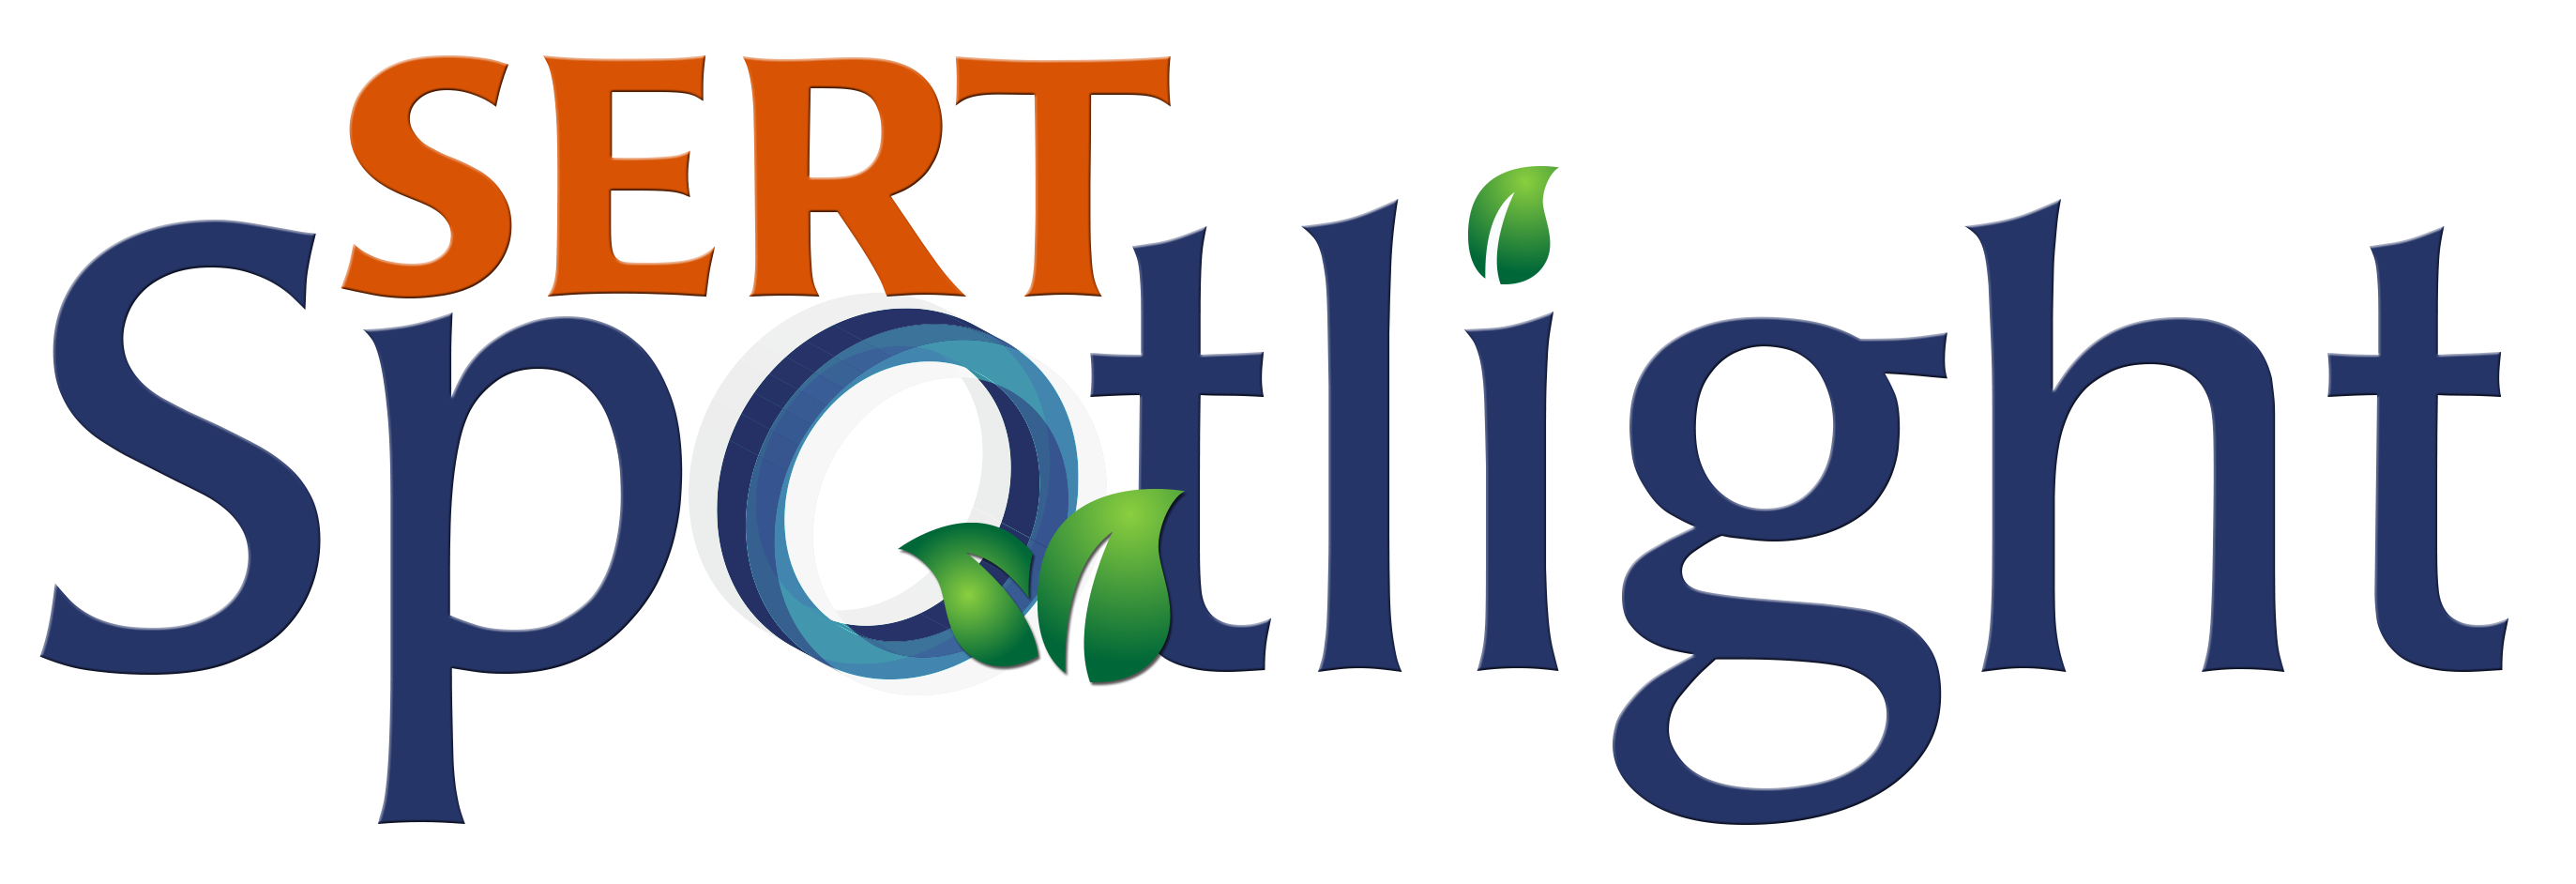 The SERT Spotlight logo features title text and leaves and a 3D letter O